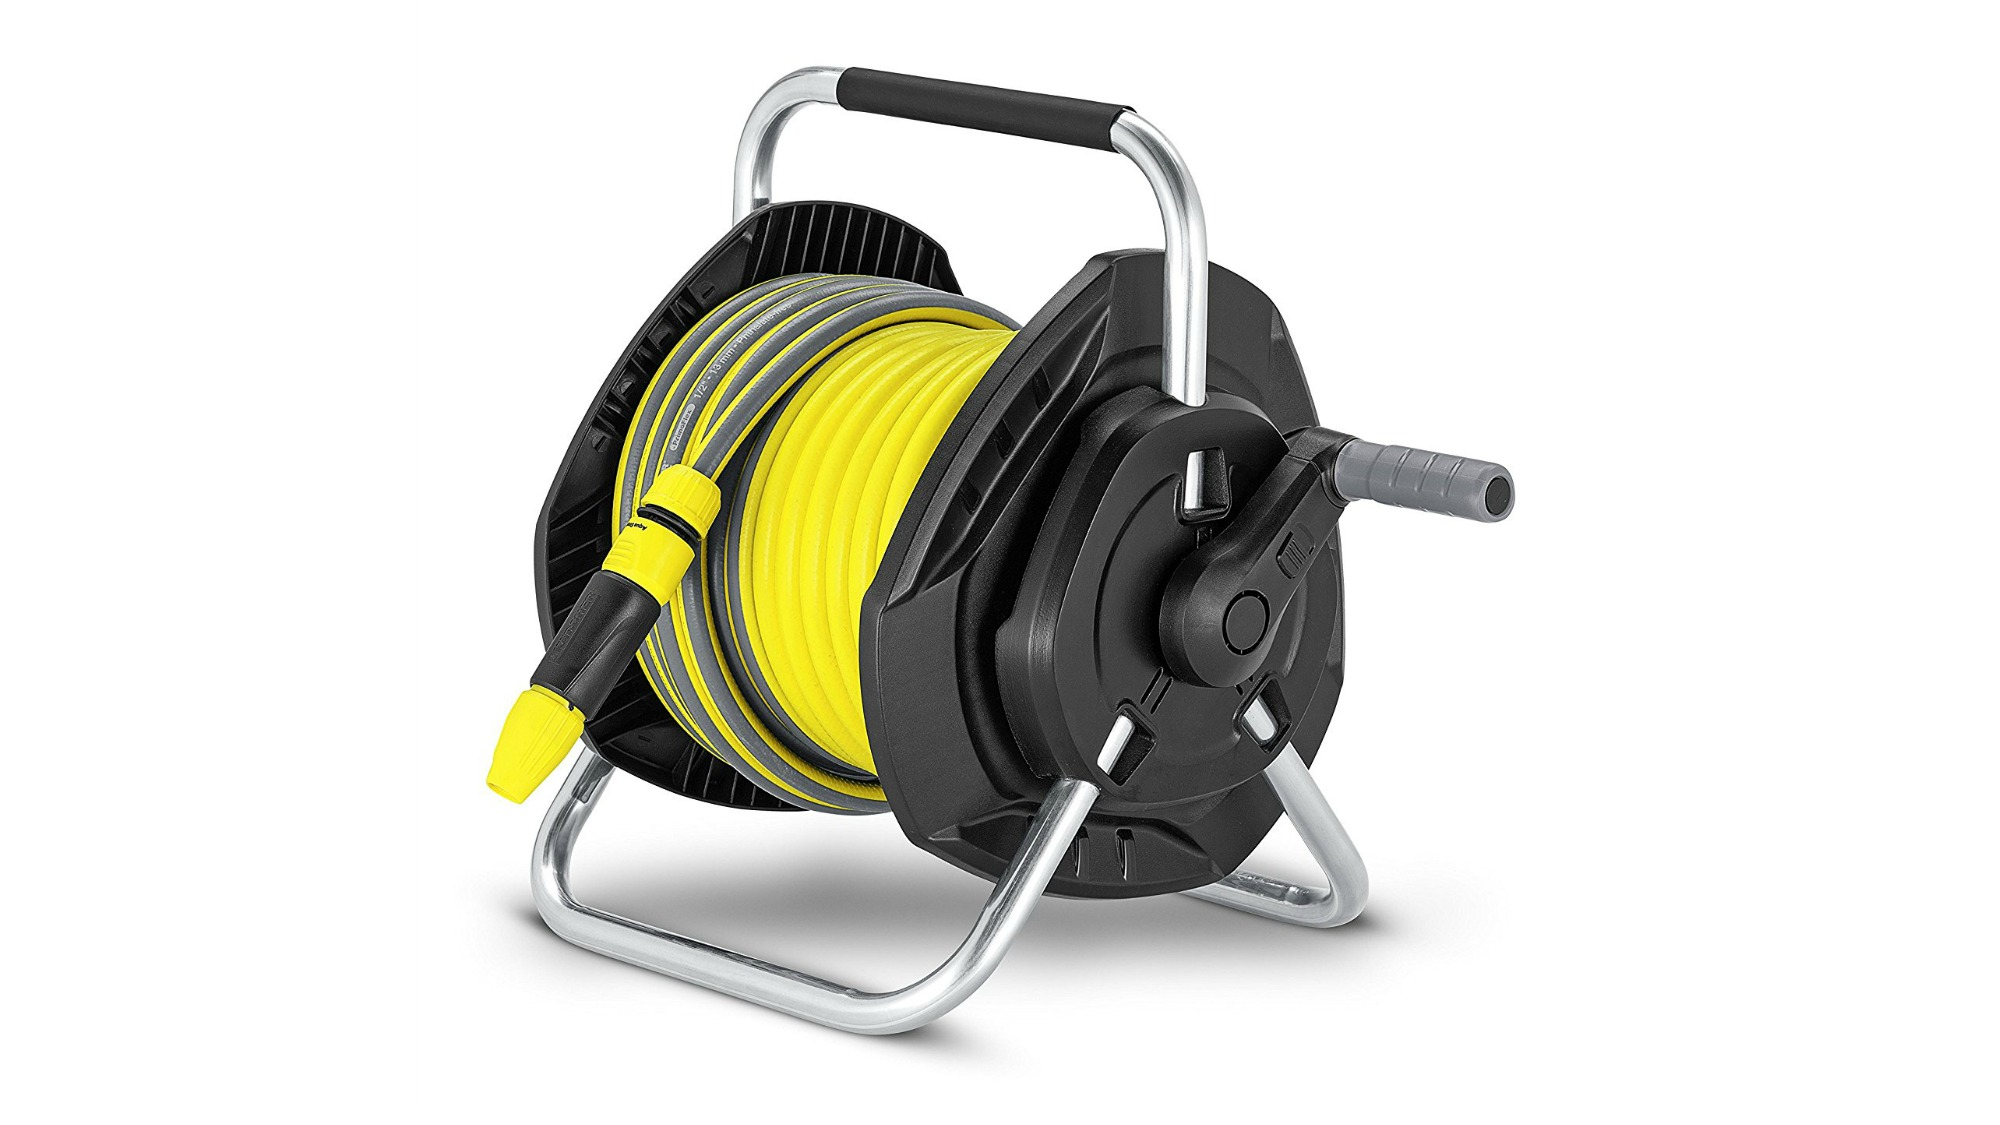 Best garden hose The best garden hoses to buy from 12 Expert